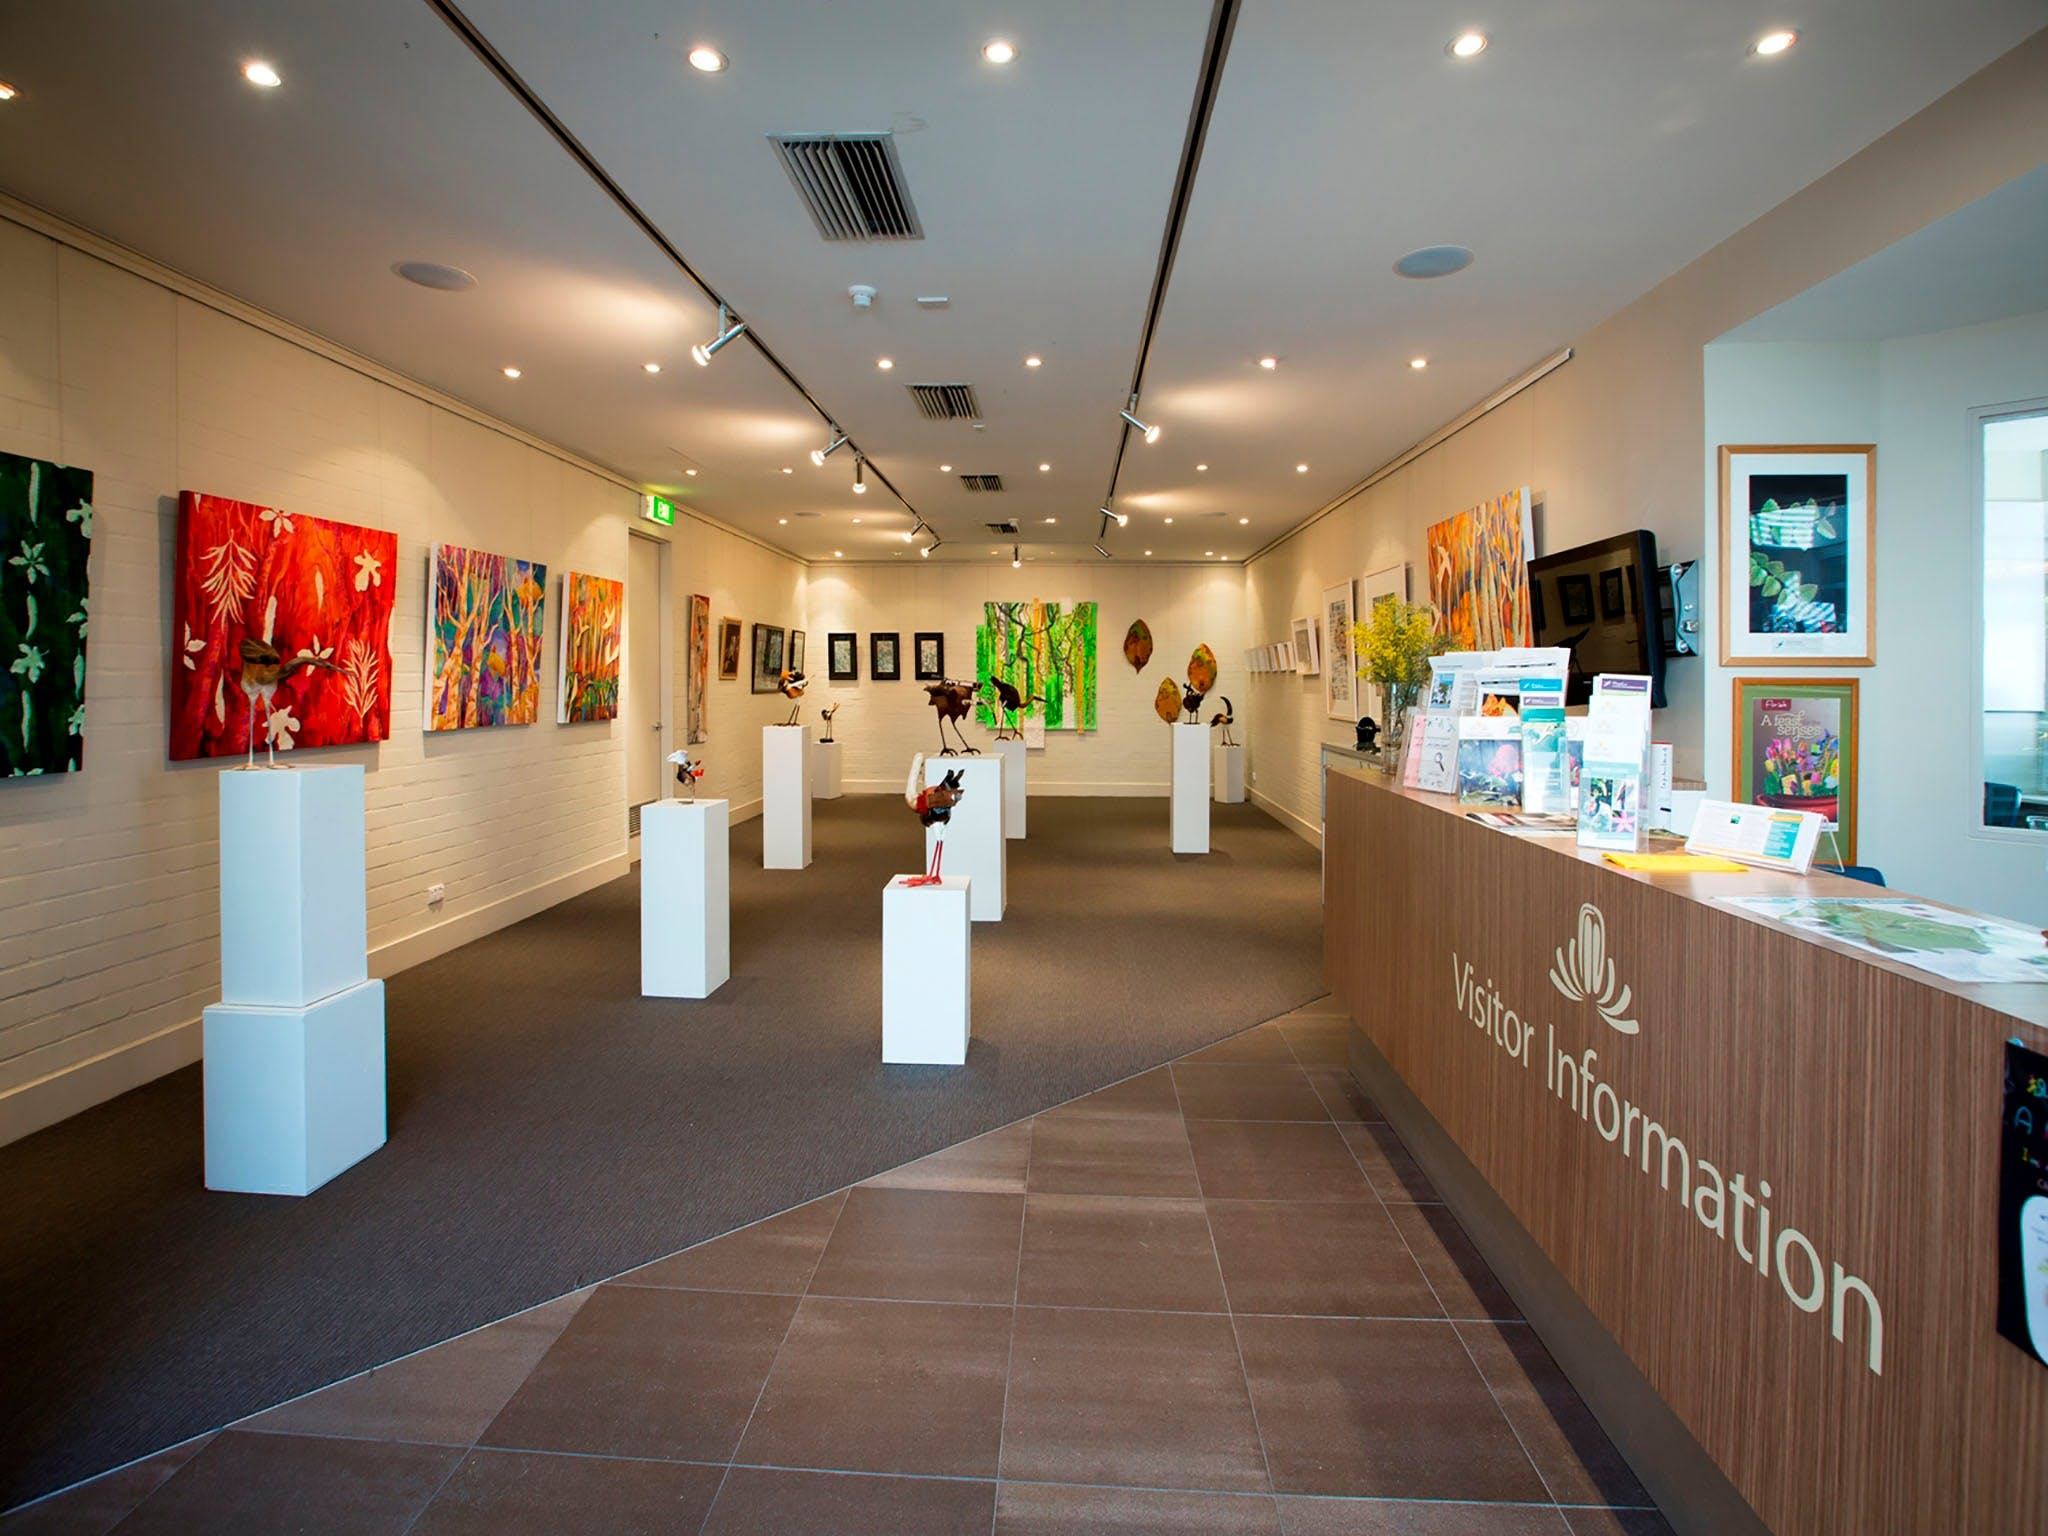 Australian National Botanic Gardens Visitor Centre Gallery - Attractions Sydney